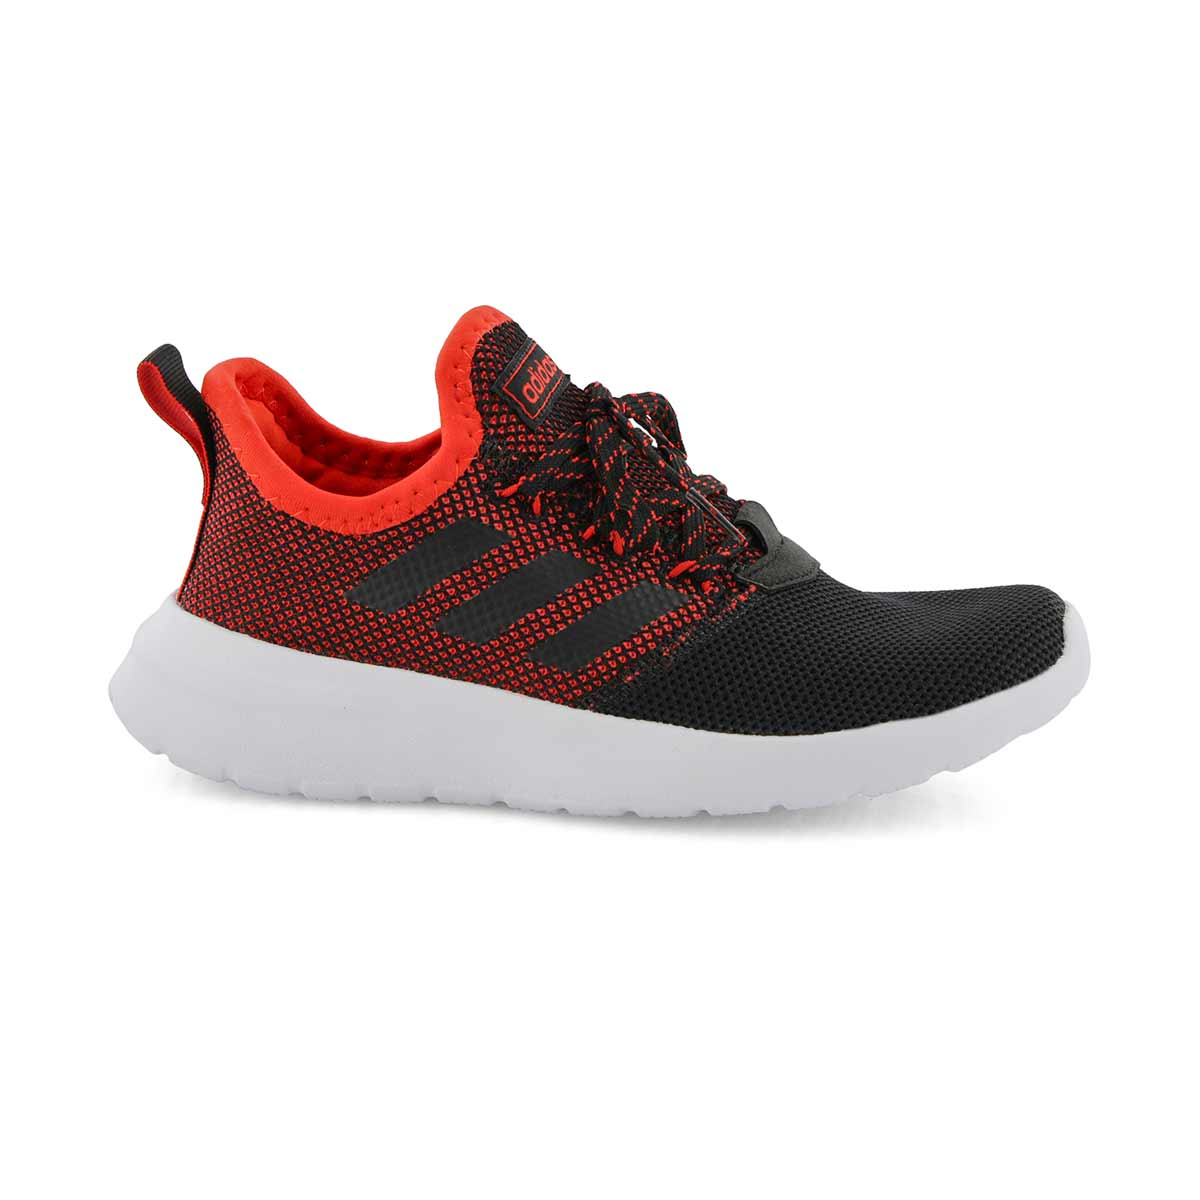 Chlds Lite Racer RBN K red/blk runner